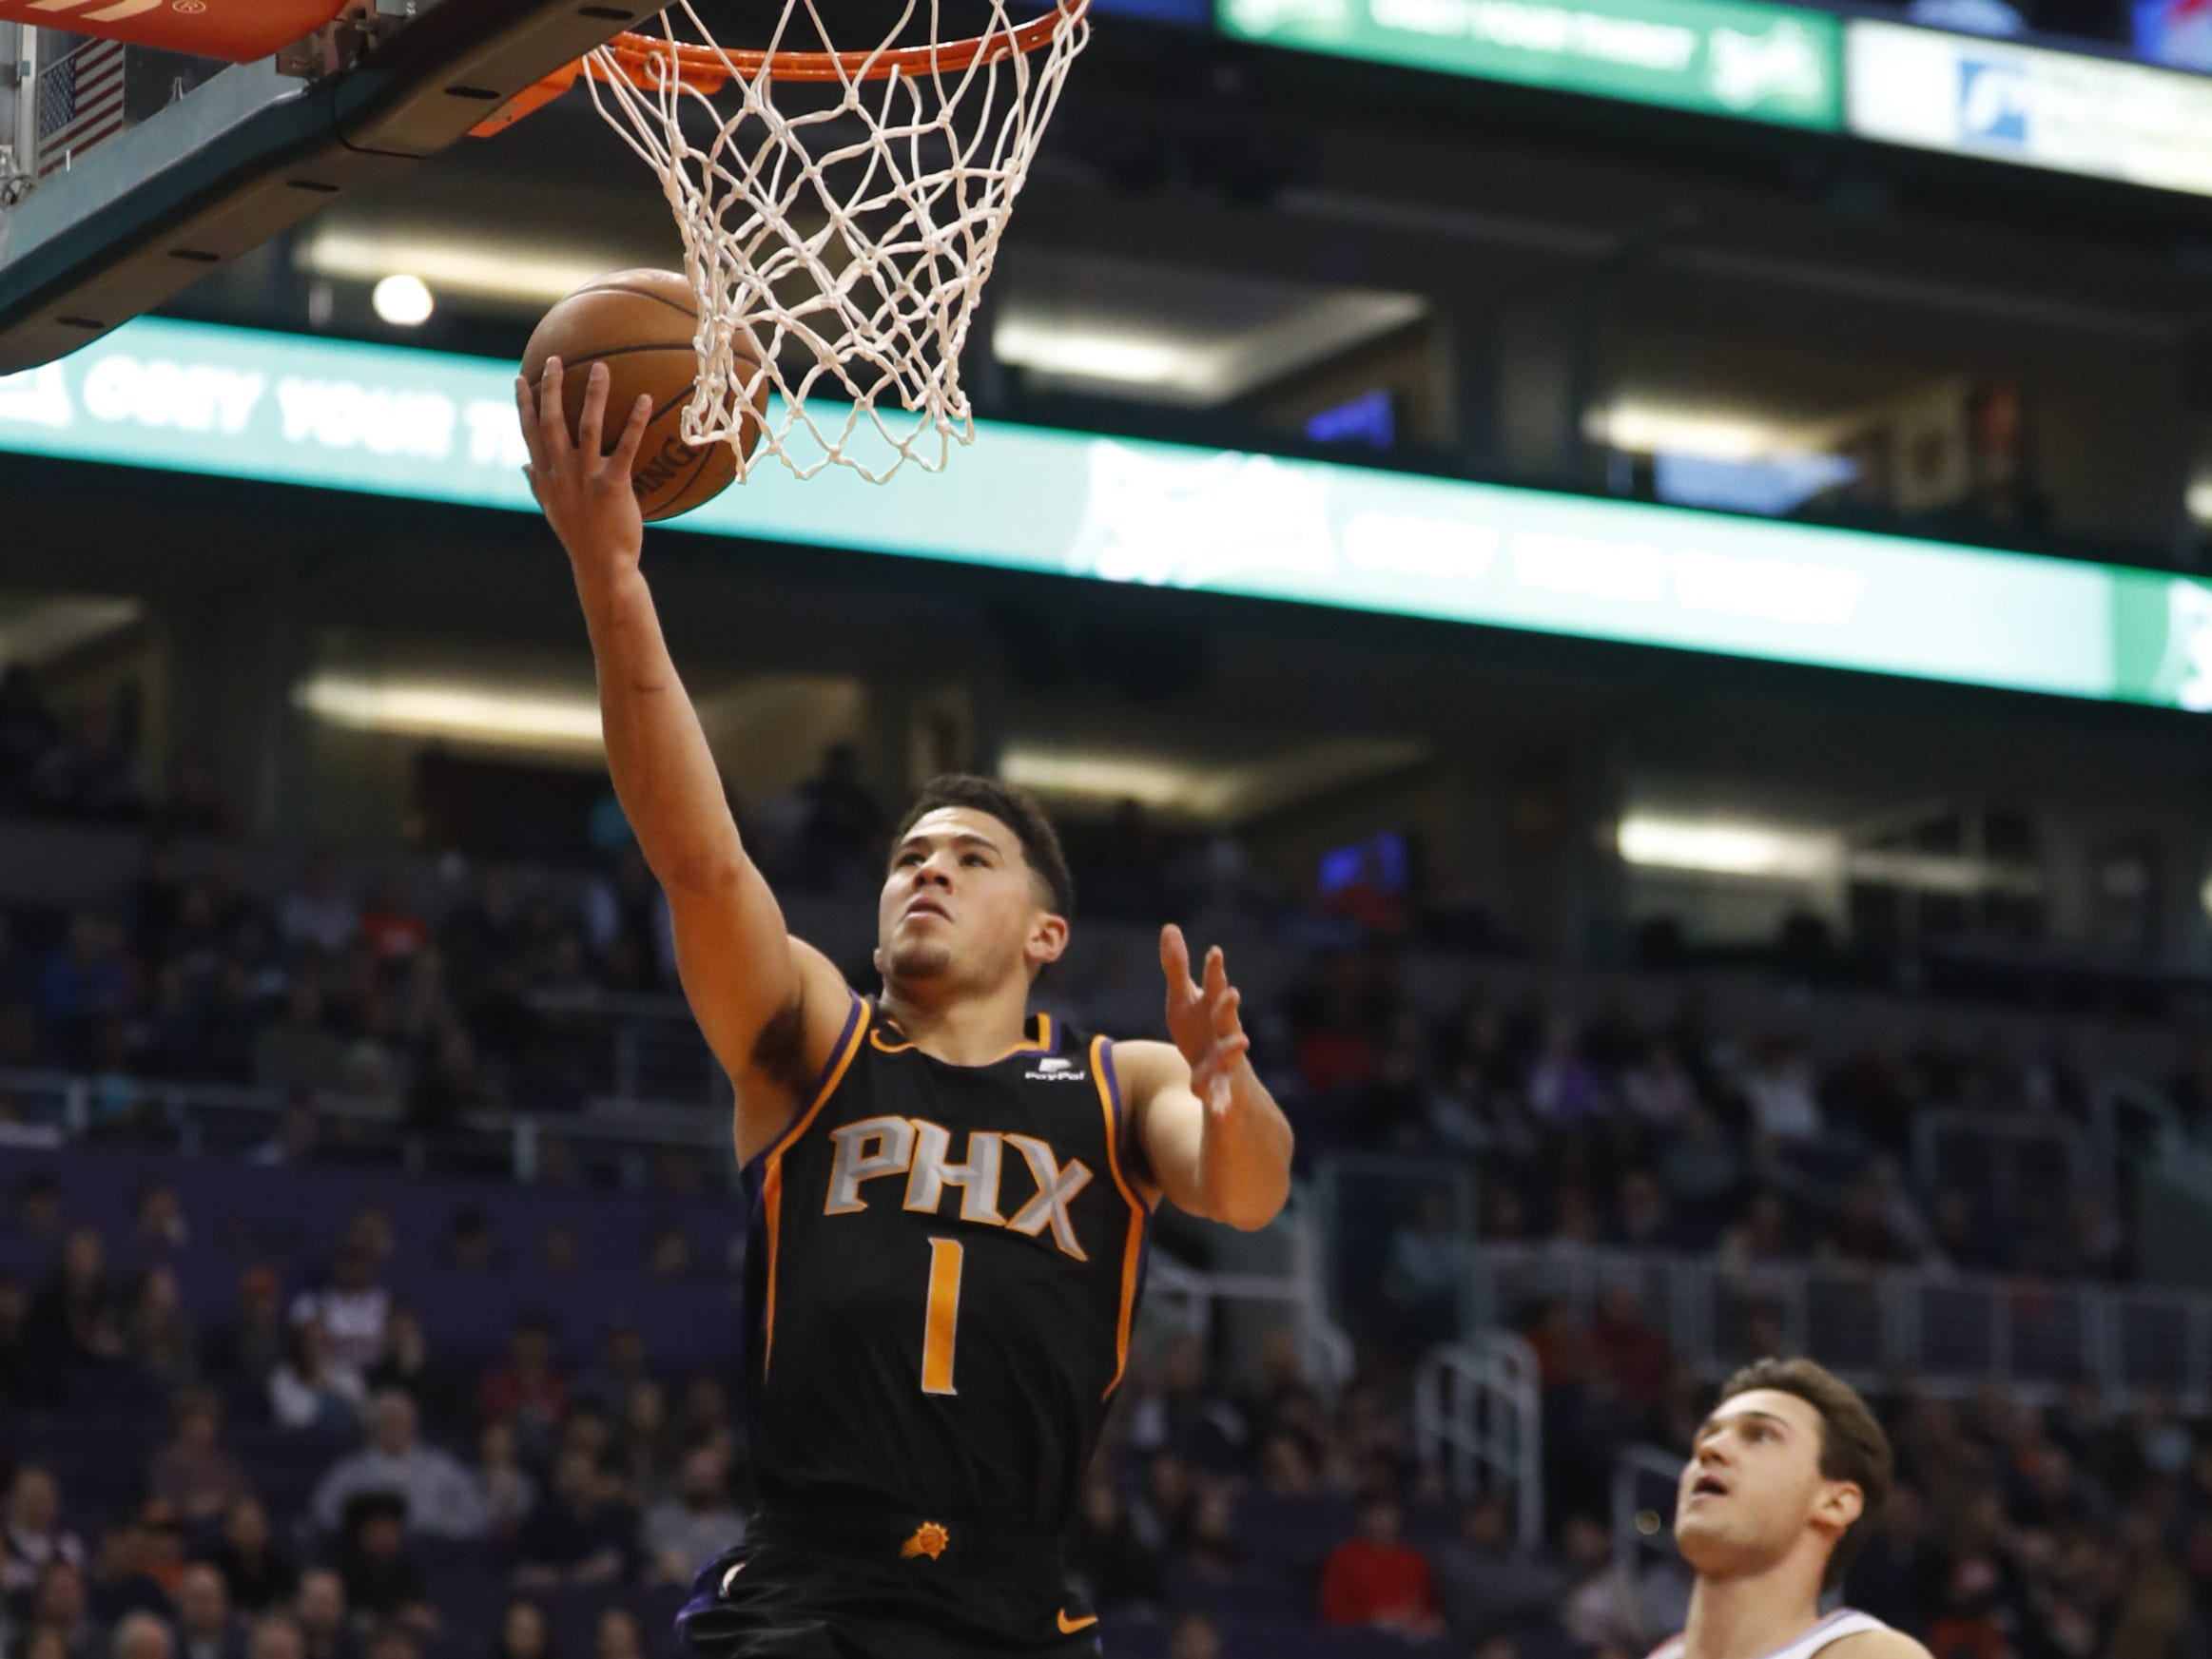 Suns' Devin Booker (1) scores a layup against the Clippers during the first half at Talking Stick Resort Arena in Phoenix, Ariz. on January 4, 2019.